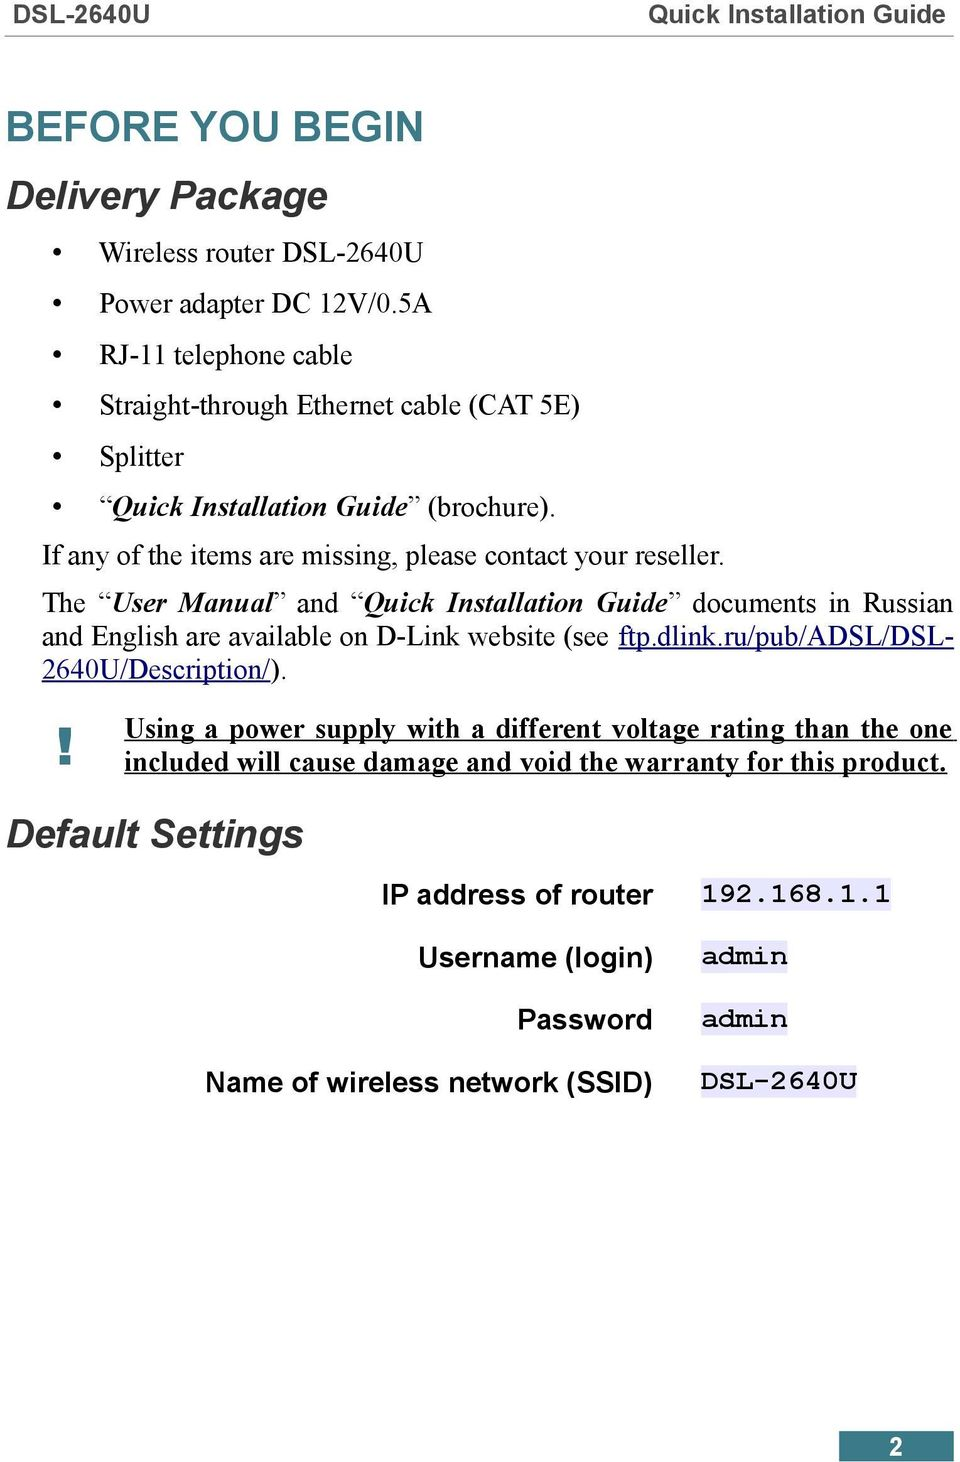 The User Manual and documents in Russian and English are available on D-Link website (see ftp.dlink.ru/pub/adsl/dsl- 2640U/Description/).